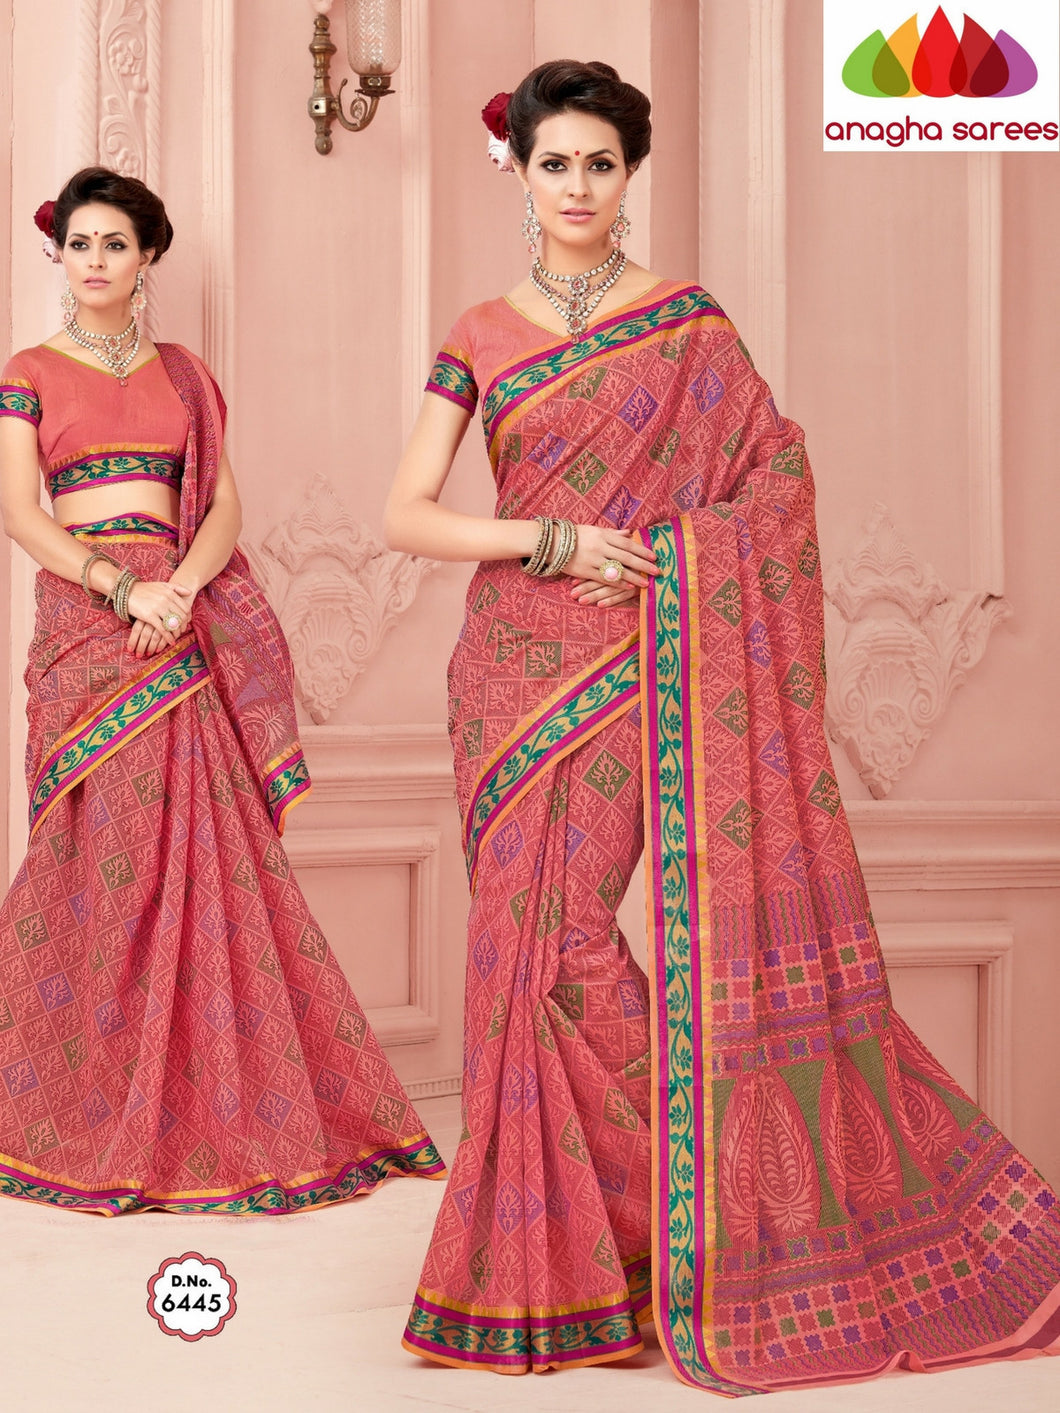 Anagha Sarees Cotton saree Fancy Cotton Saree - Pink/Zari-Woven Border : ANA_346